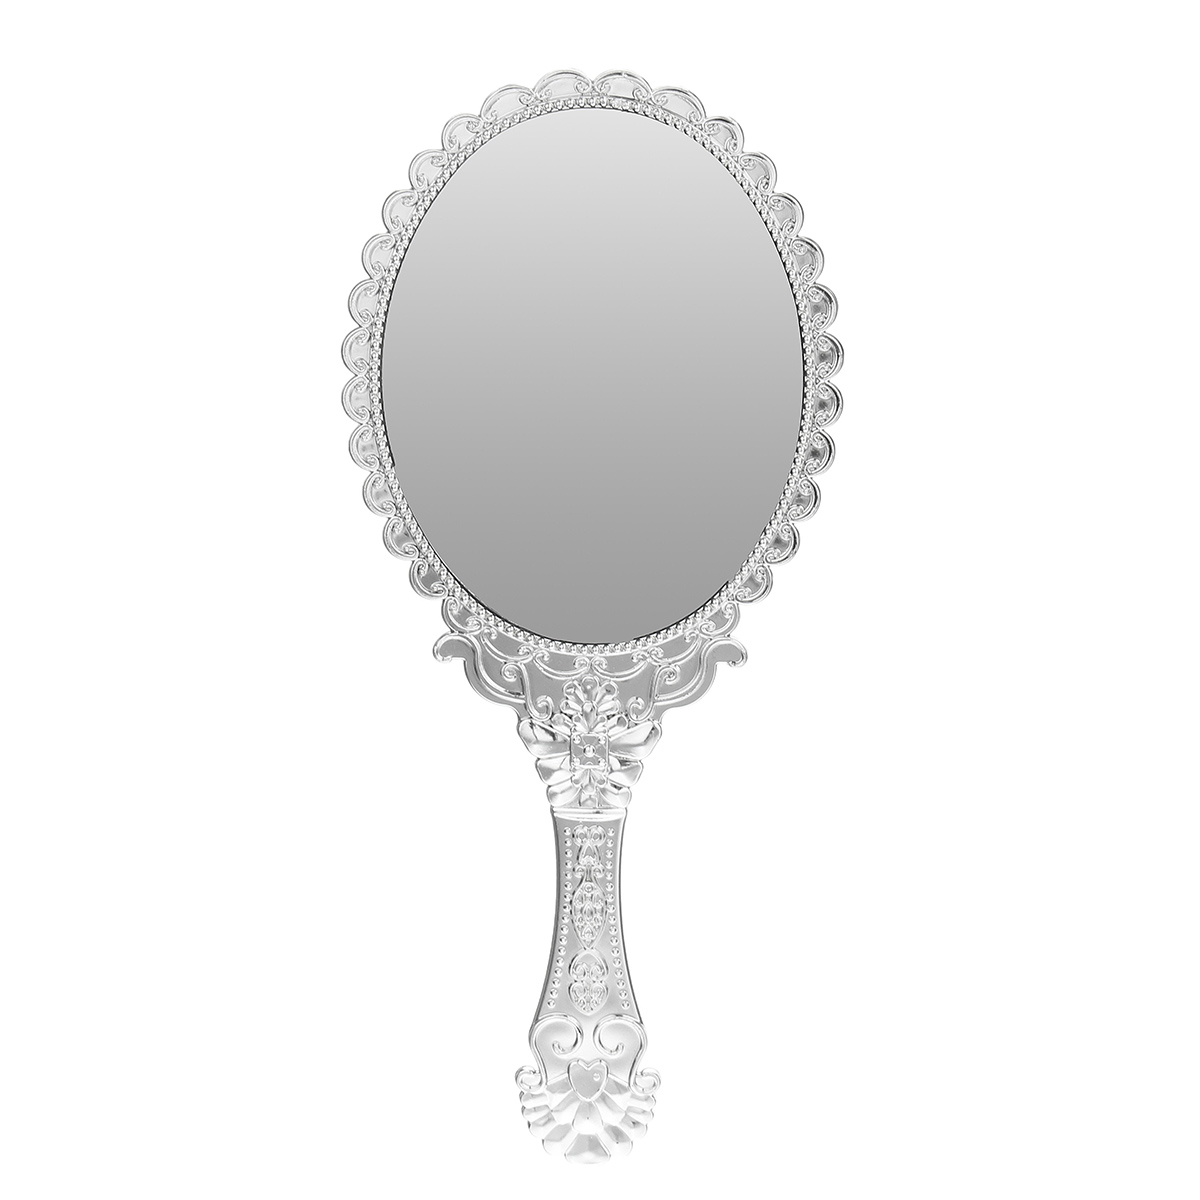 vintage queen silver makeup mirror beauty gift for women round portable decorative wall hand mirrorin party diy decorations from home hand holding mirror m44 hand